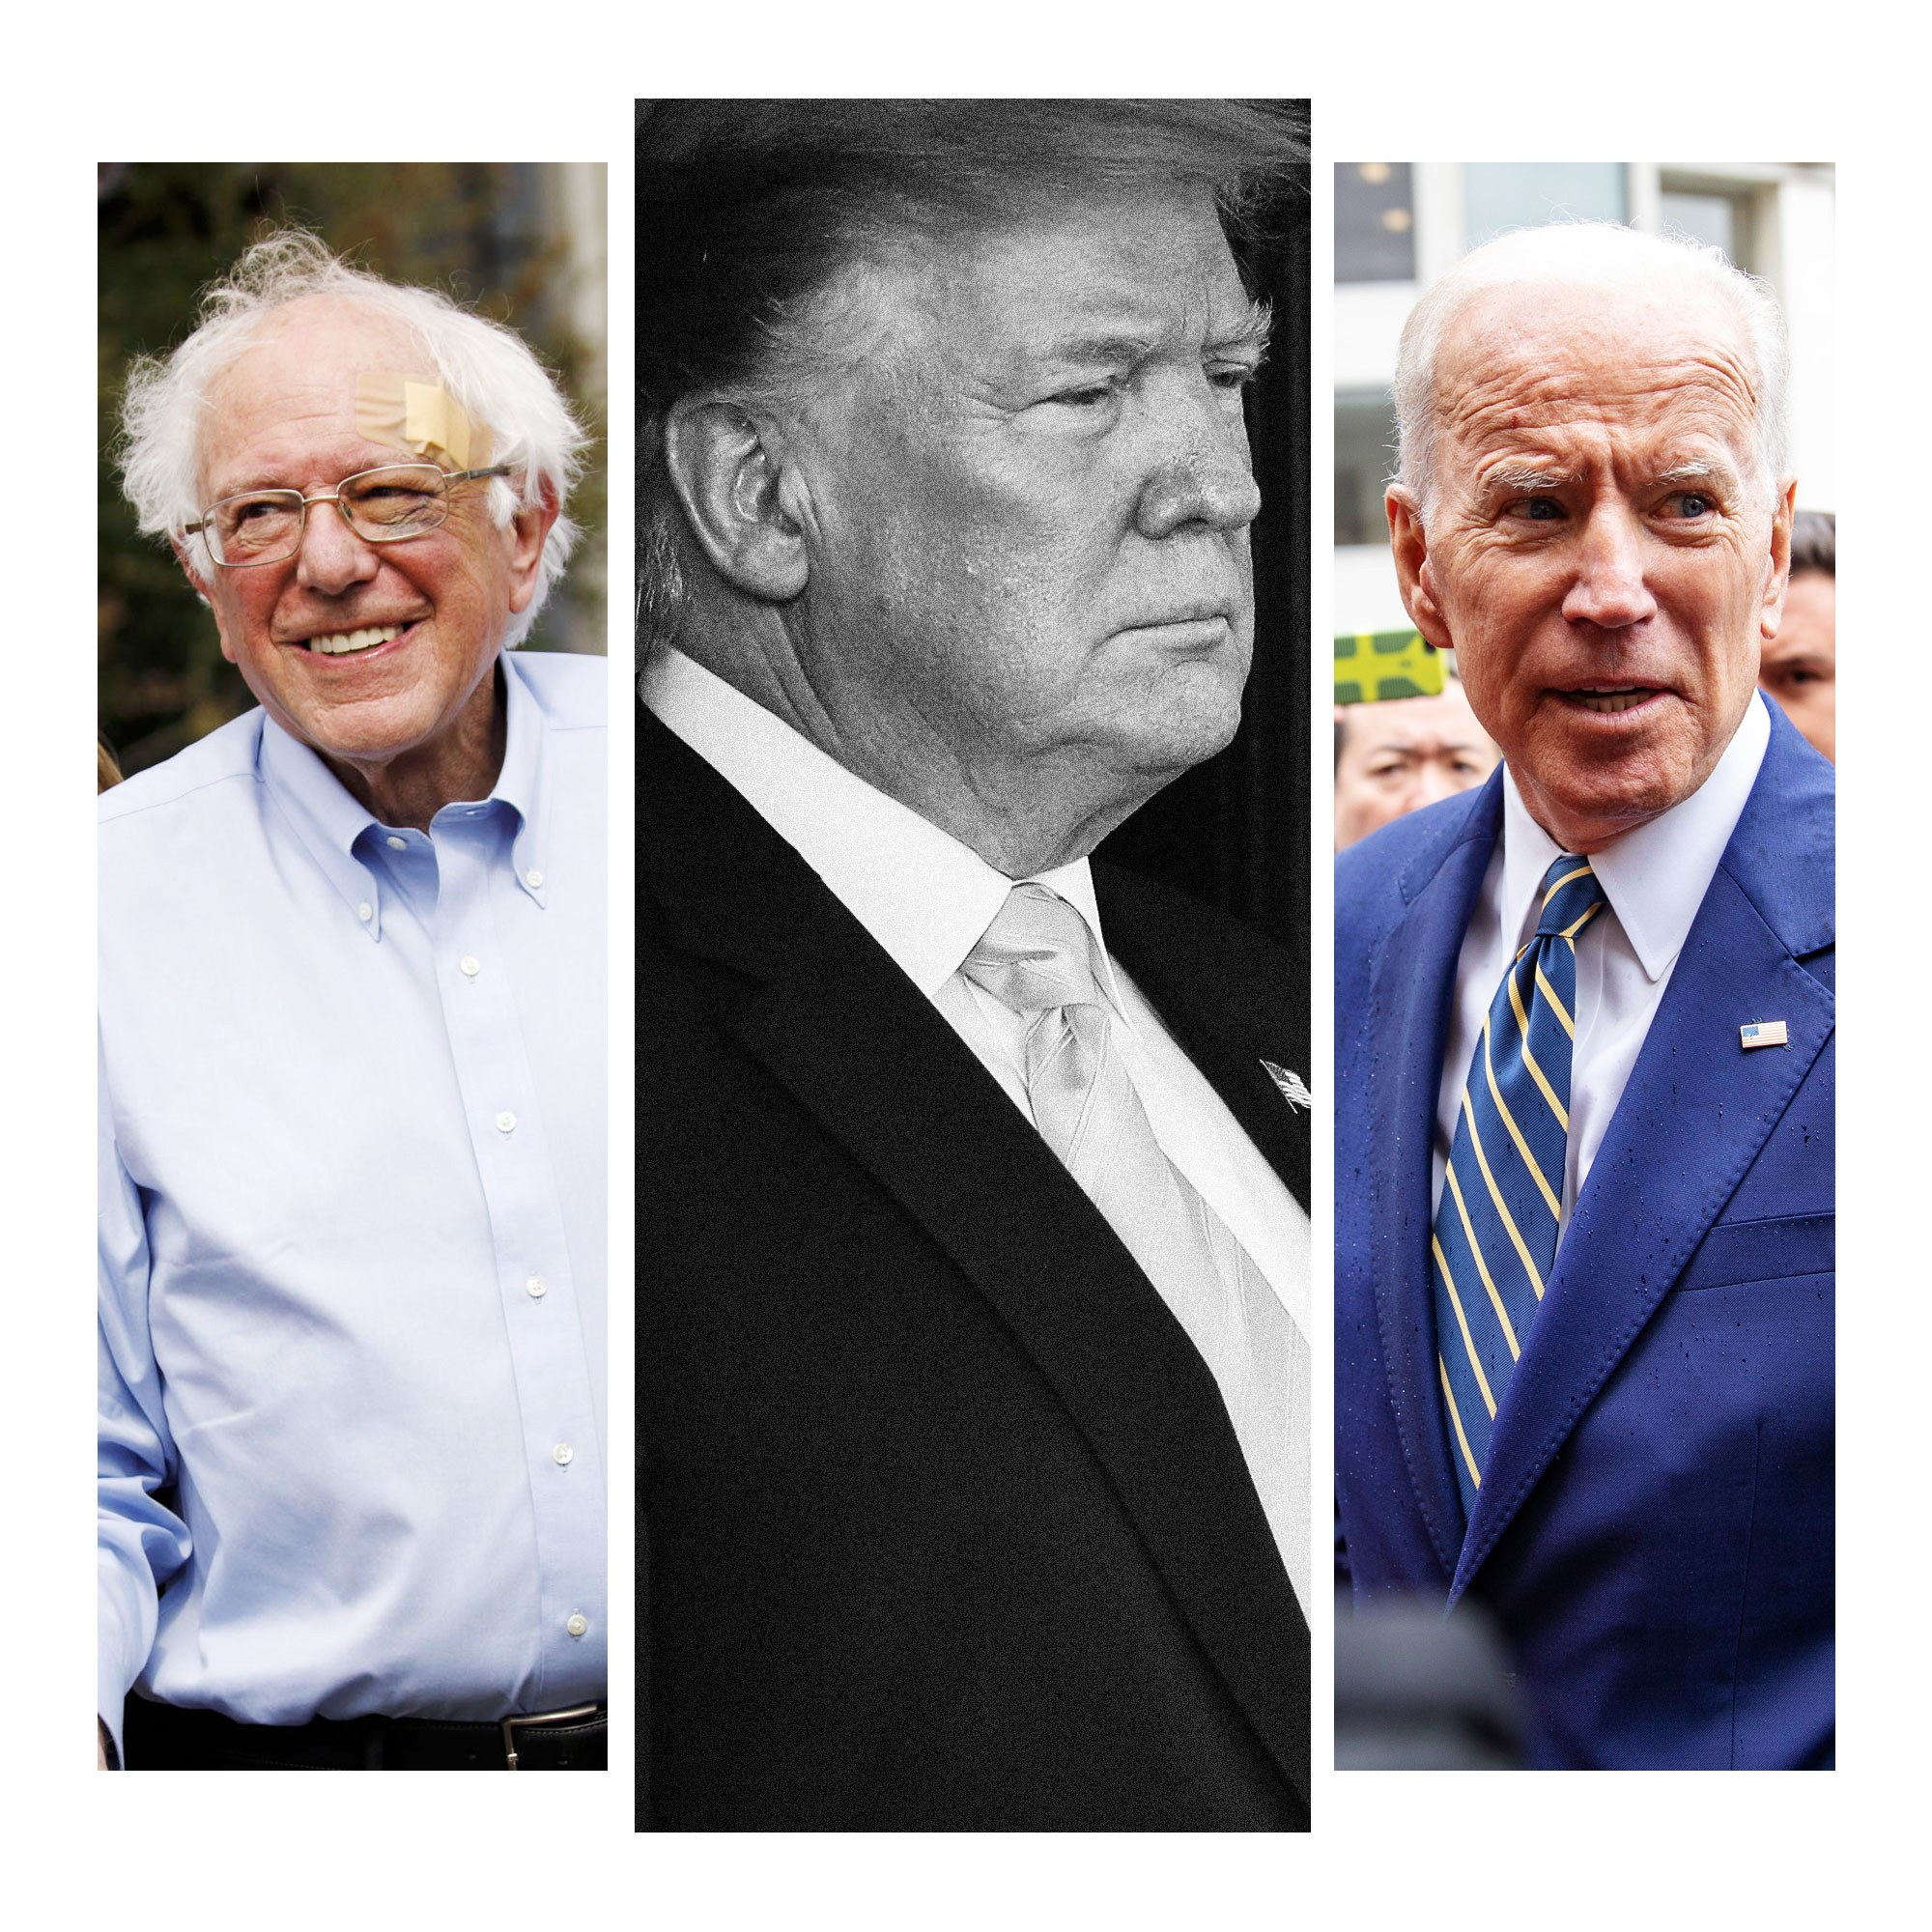 bernie-and-joe-like-donald-trump